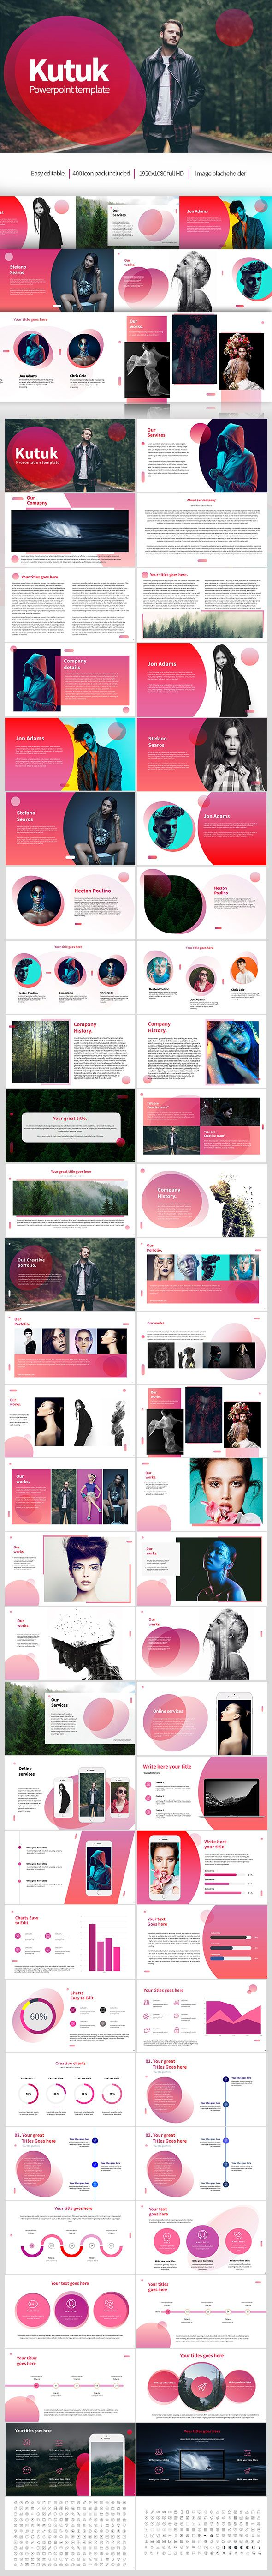 Kutuk Powerpoint Presentation Kutuk, modern and clean presentation template.  Support:  ceo@azadsultanov.com  Features: —-—-—-—-—-—-—-—-—-—-—-—-—-—-—-—-—-—- - FULL HD 16:9 ASPECT RATIO  - Easy and fully editable in PowerPoint (shape colour, size, position, etc)  - 400 easy editable font icons kit. - IMAGE PLACEHOLDER READY - Easy editable data driven charts (pie, bar, line)  - Effective infographics with creative visualisation - All world maps - Device Mockups Included .